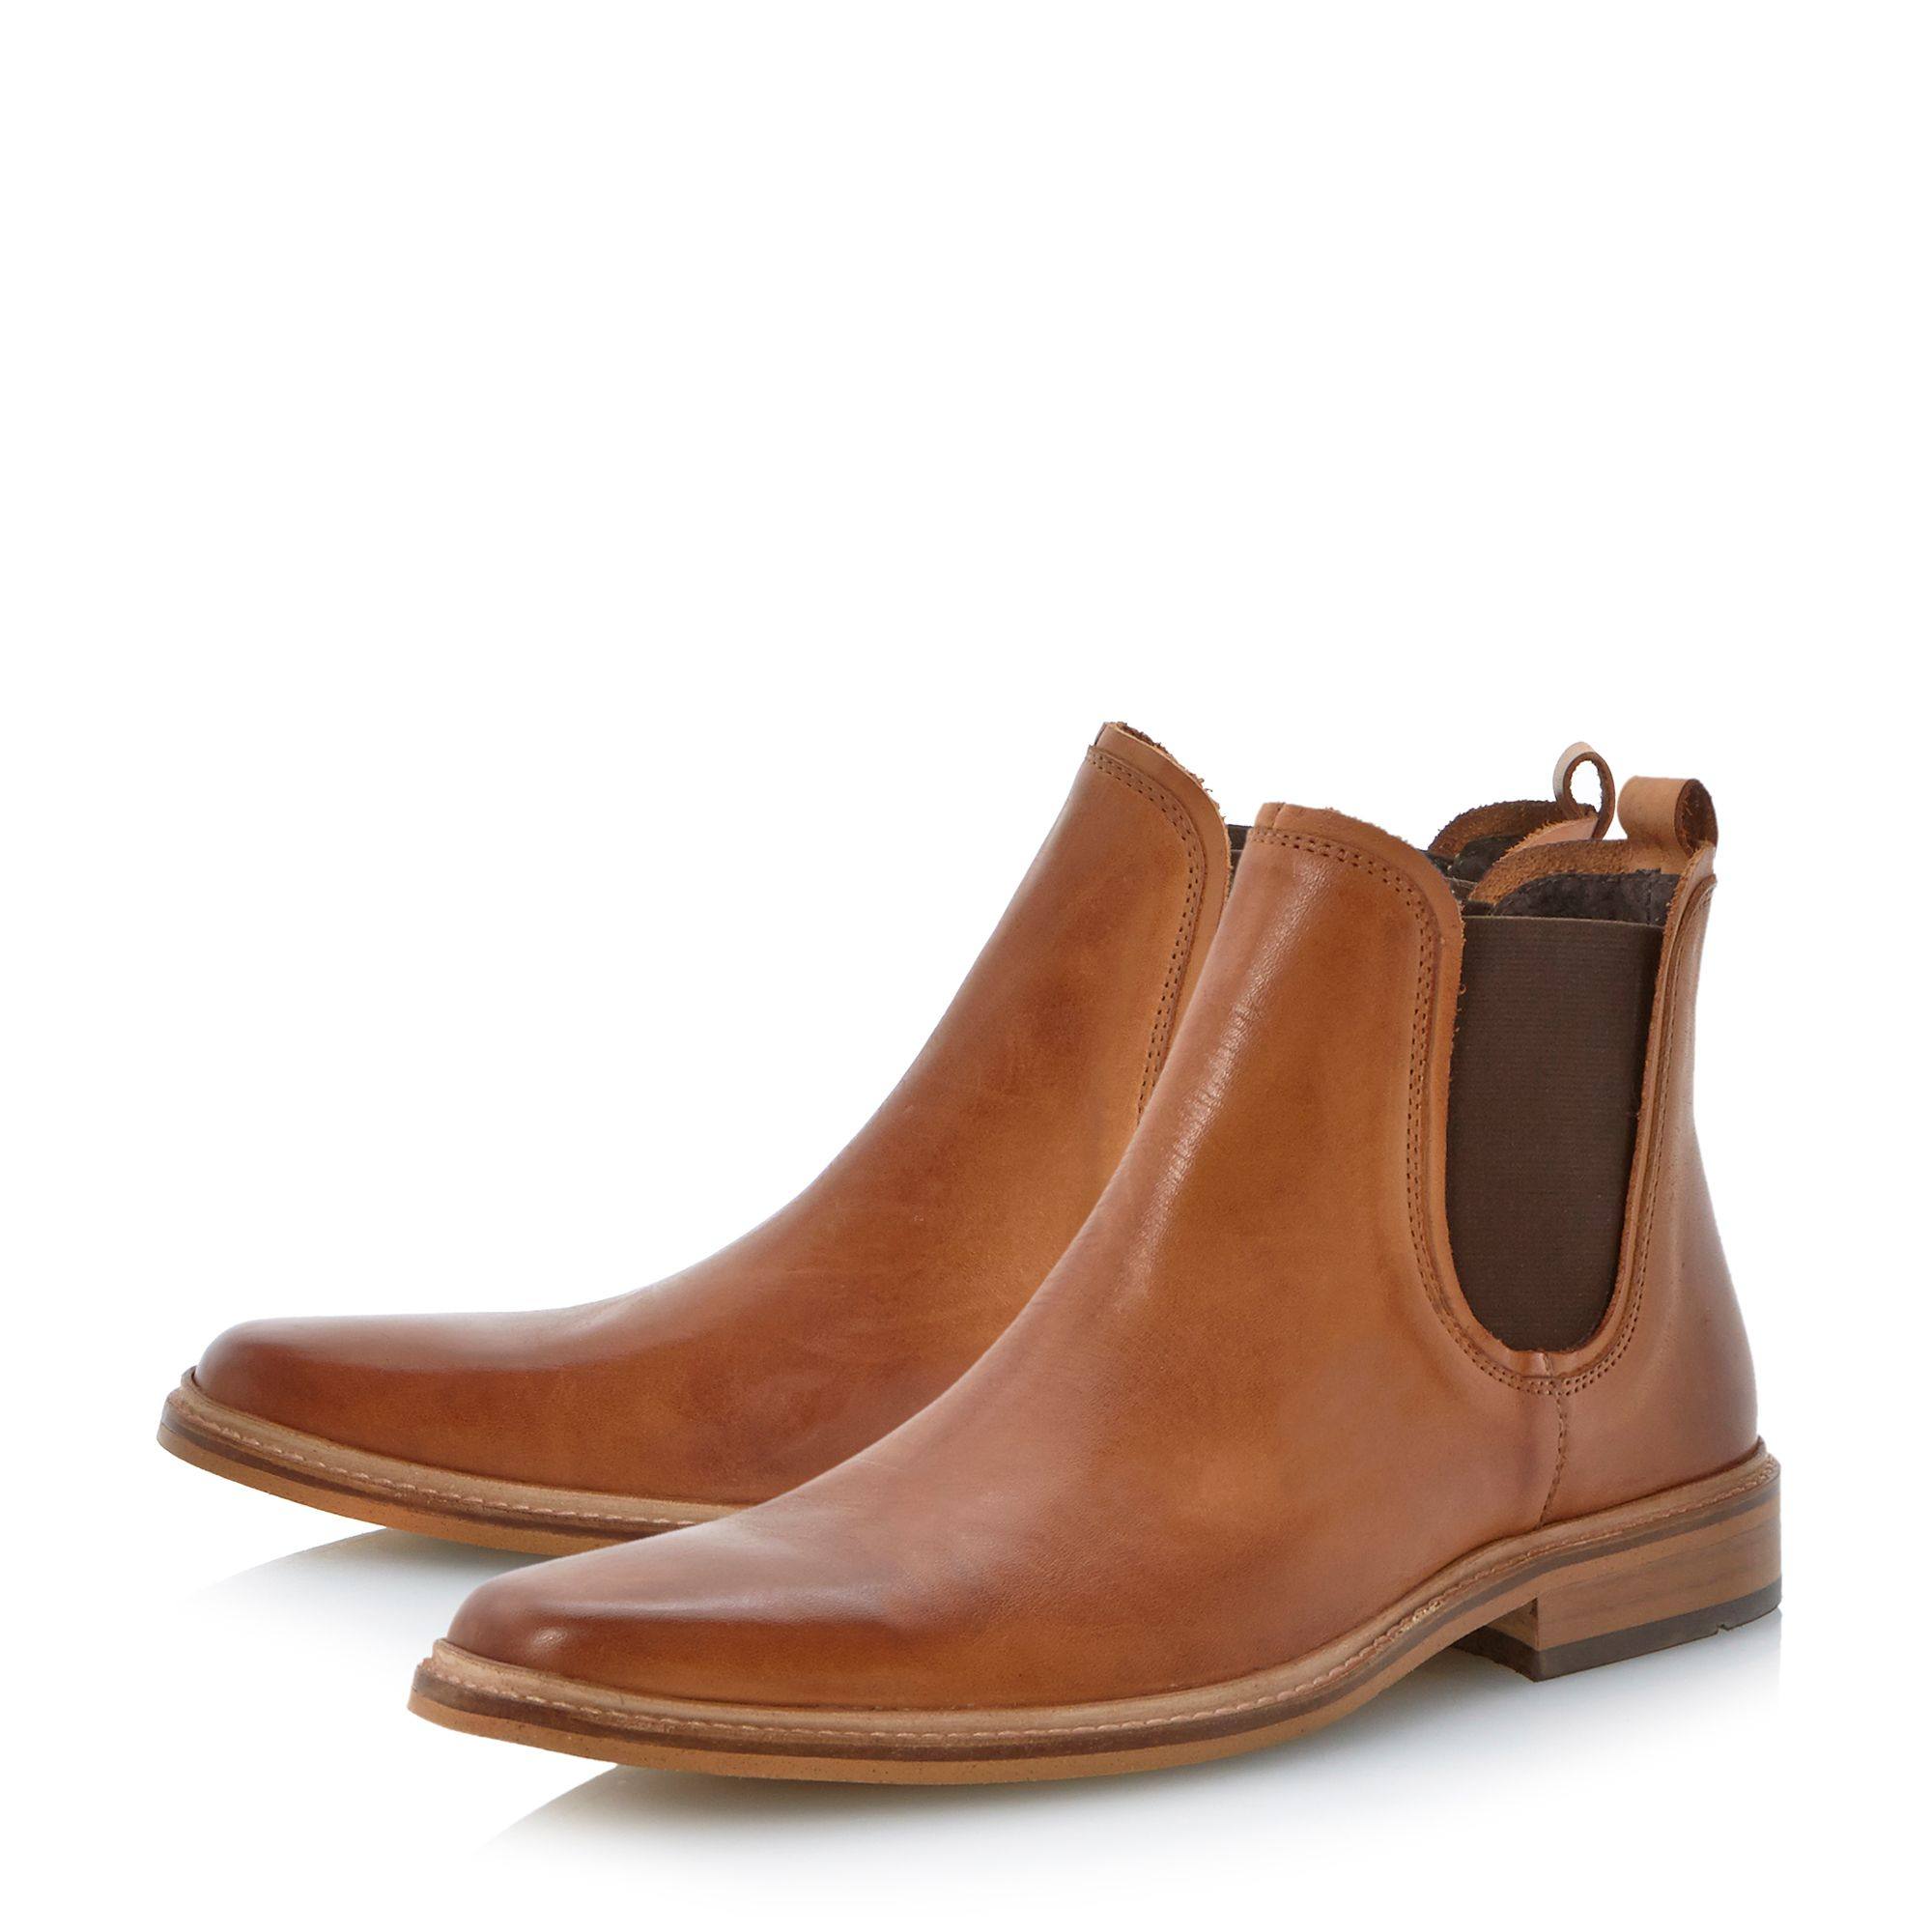 dune manderin square toe chelsea boots in brown for men lyst. Black Bedroom Furniture Sets. Home Design Ideas